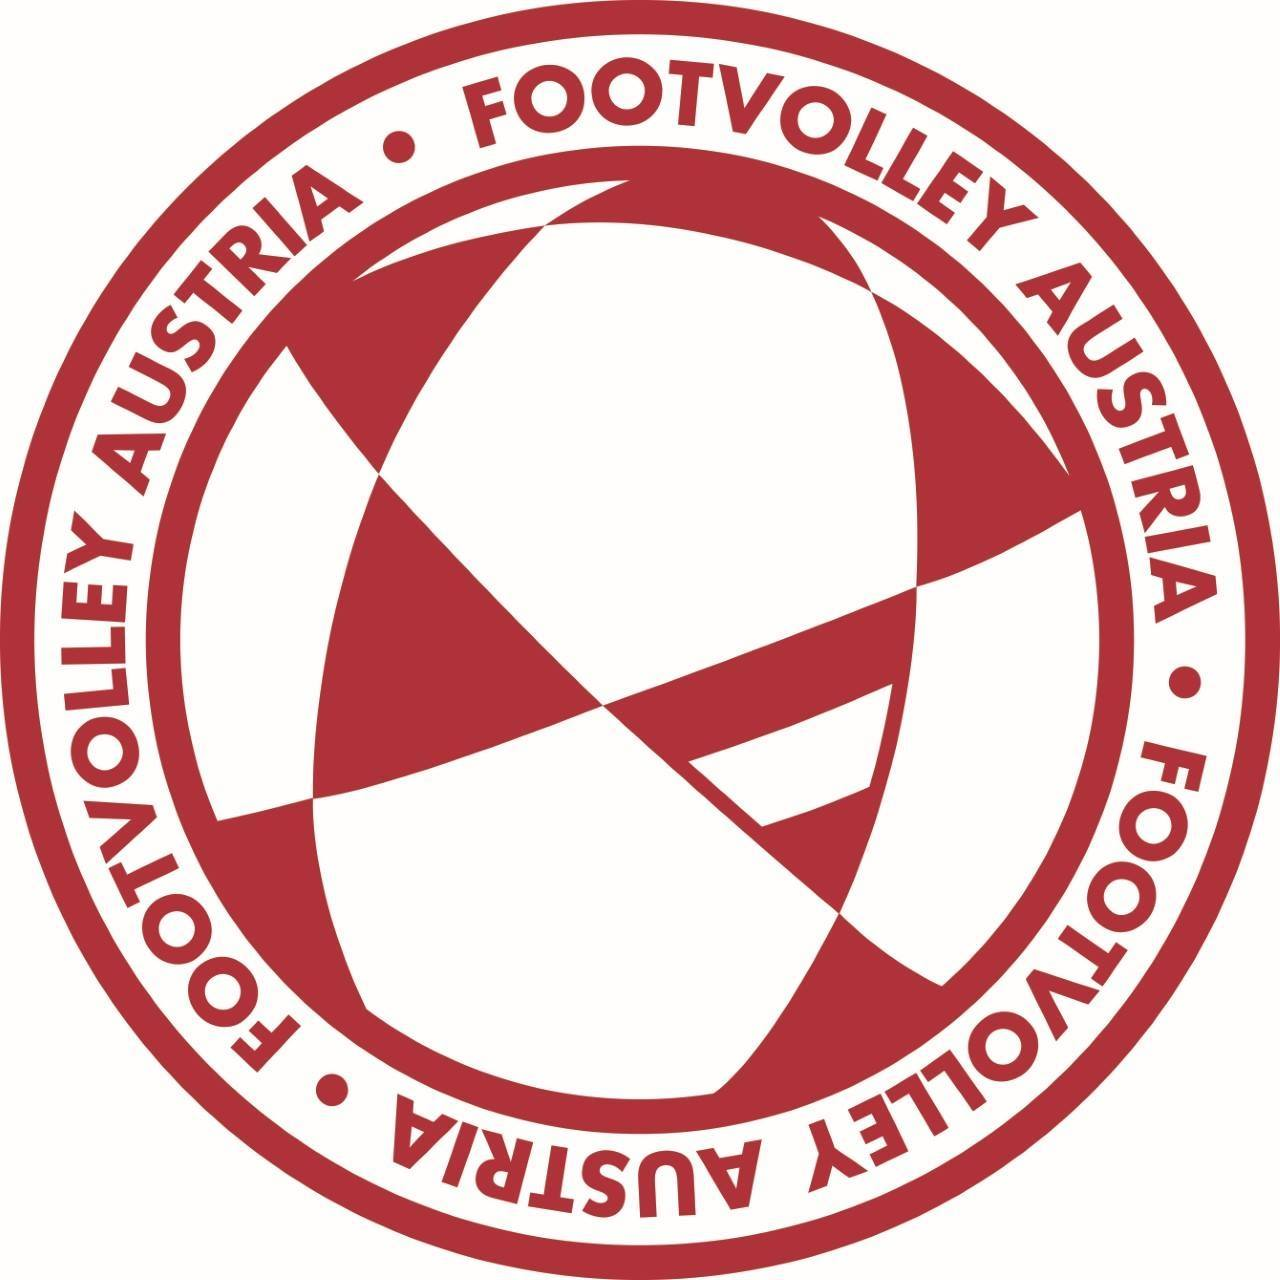 footvolley-austria-logo.jpg